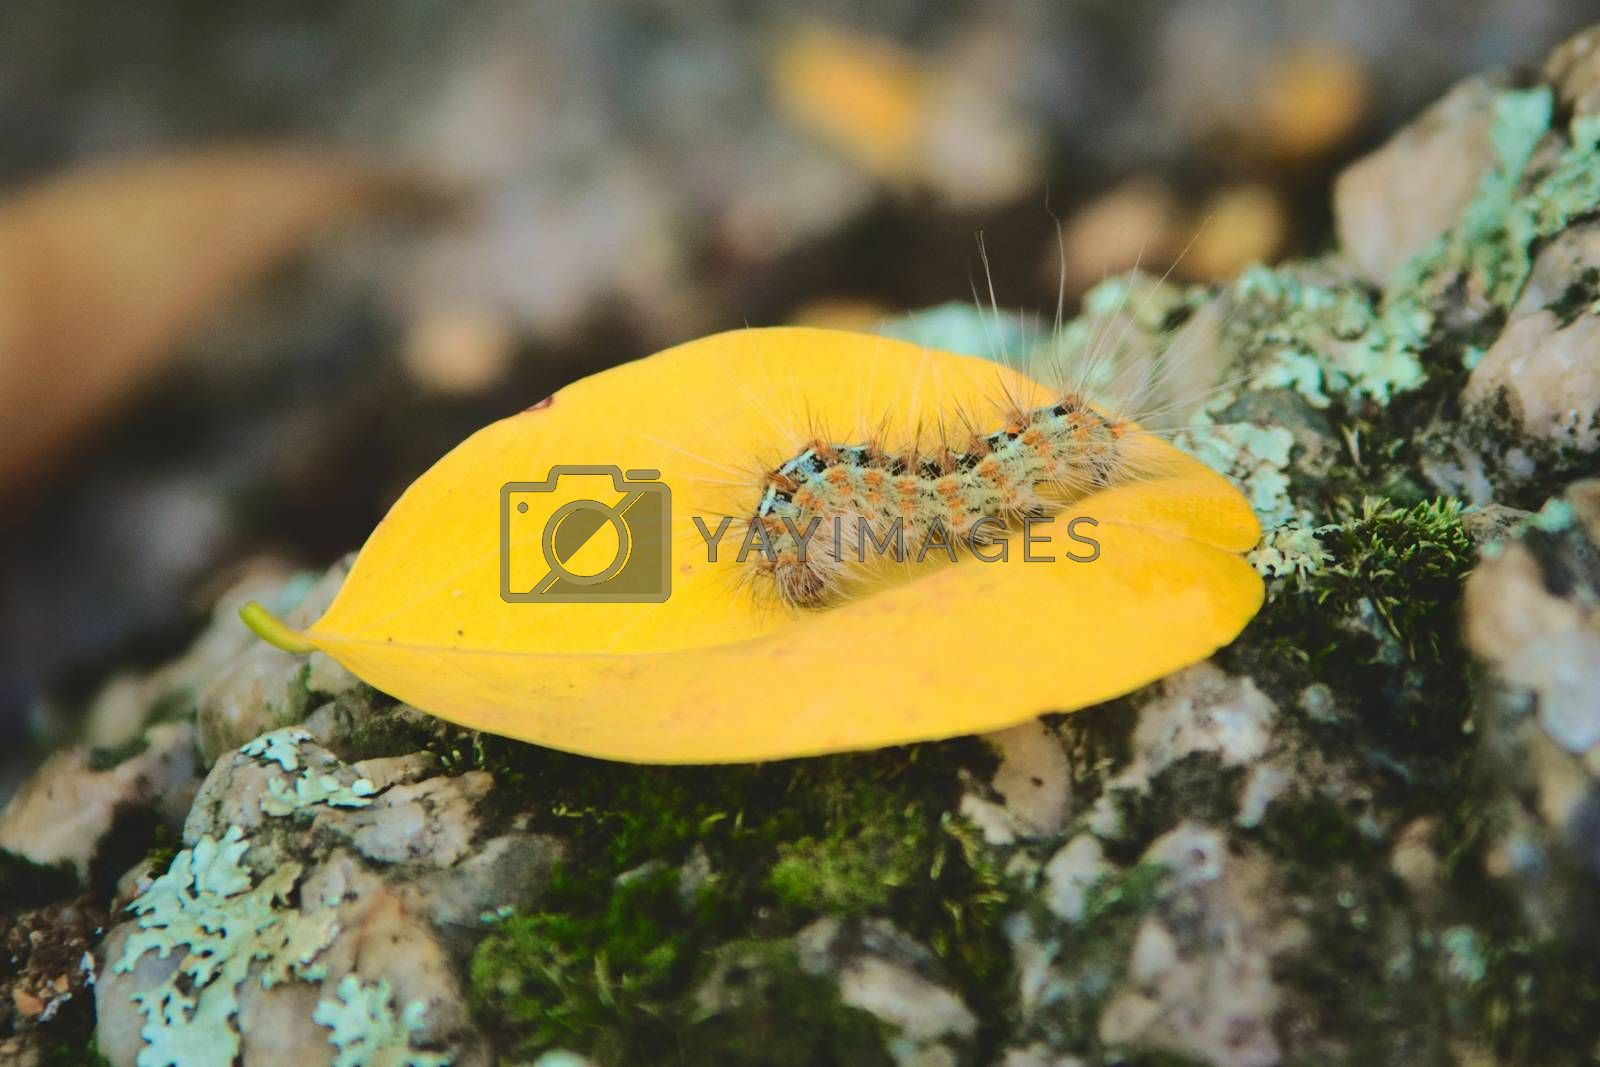 Royalty free image of Caterpillar covered in urticating hairs as a defense mechanism, spotted in a forest in San Luis, Argentina. by hernan_hyper